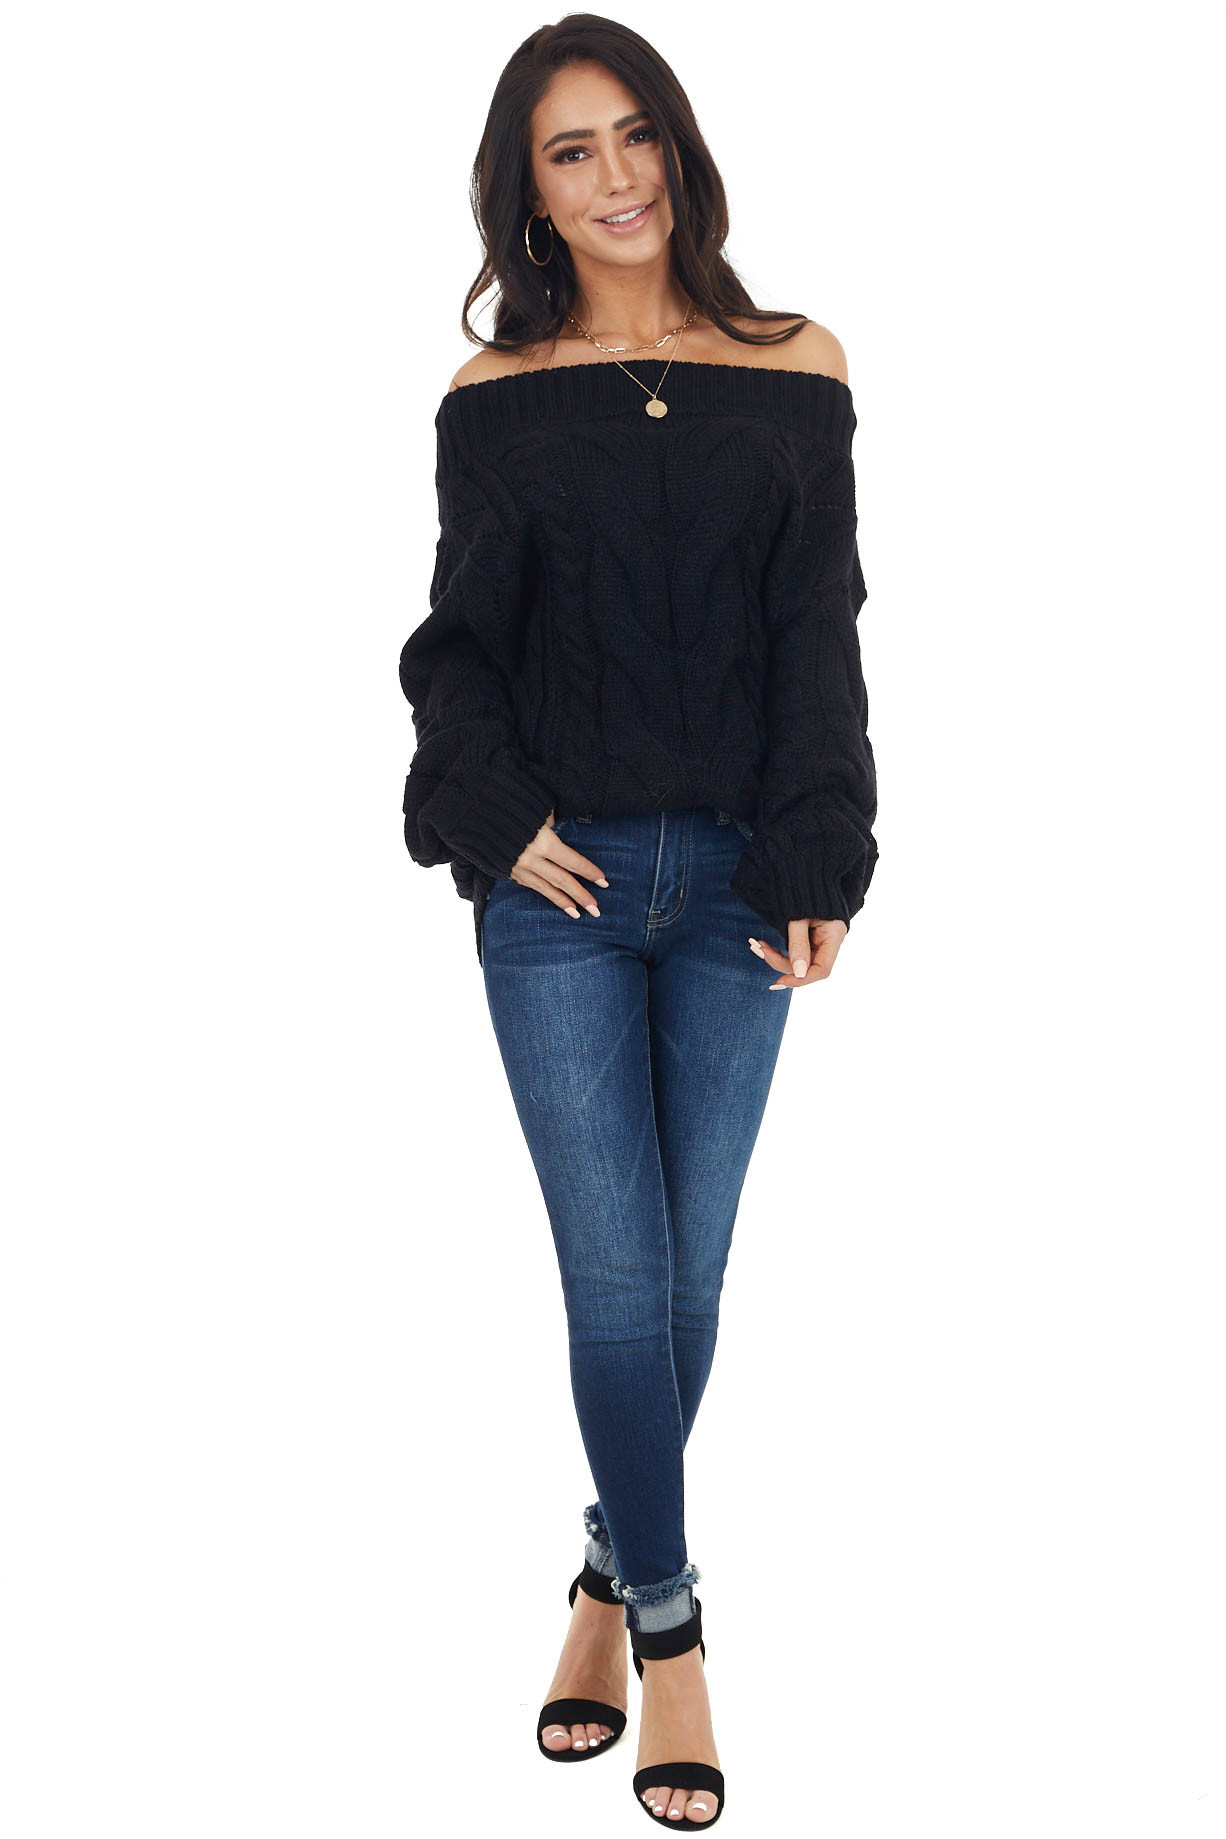 Black Chunky Cable Knit Long Sleeve Sweater